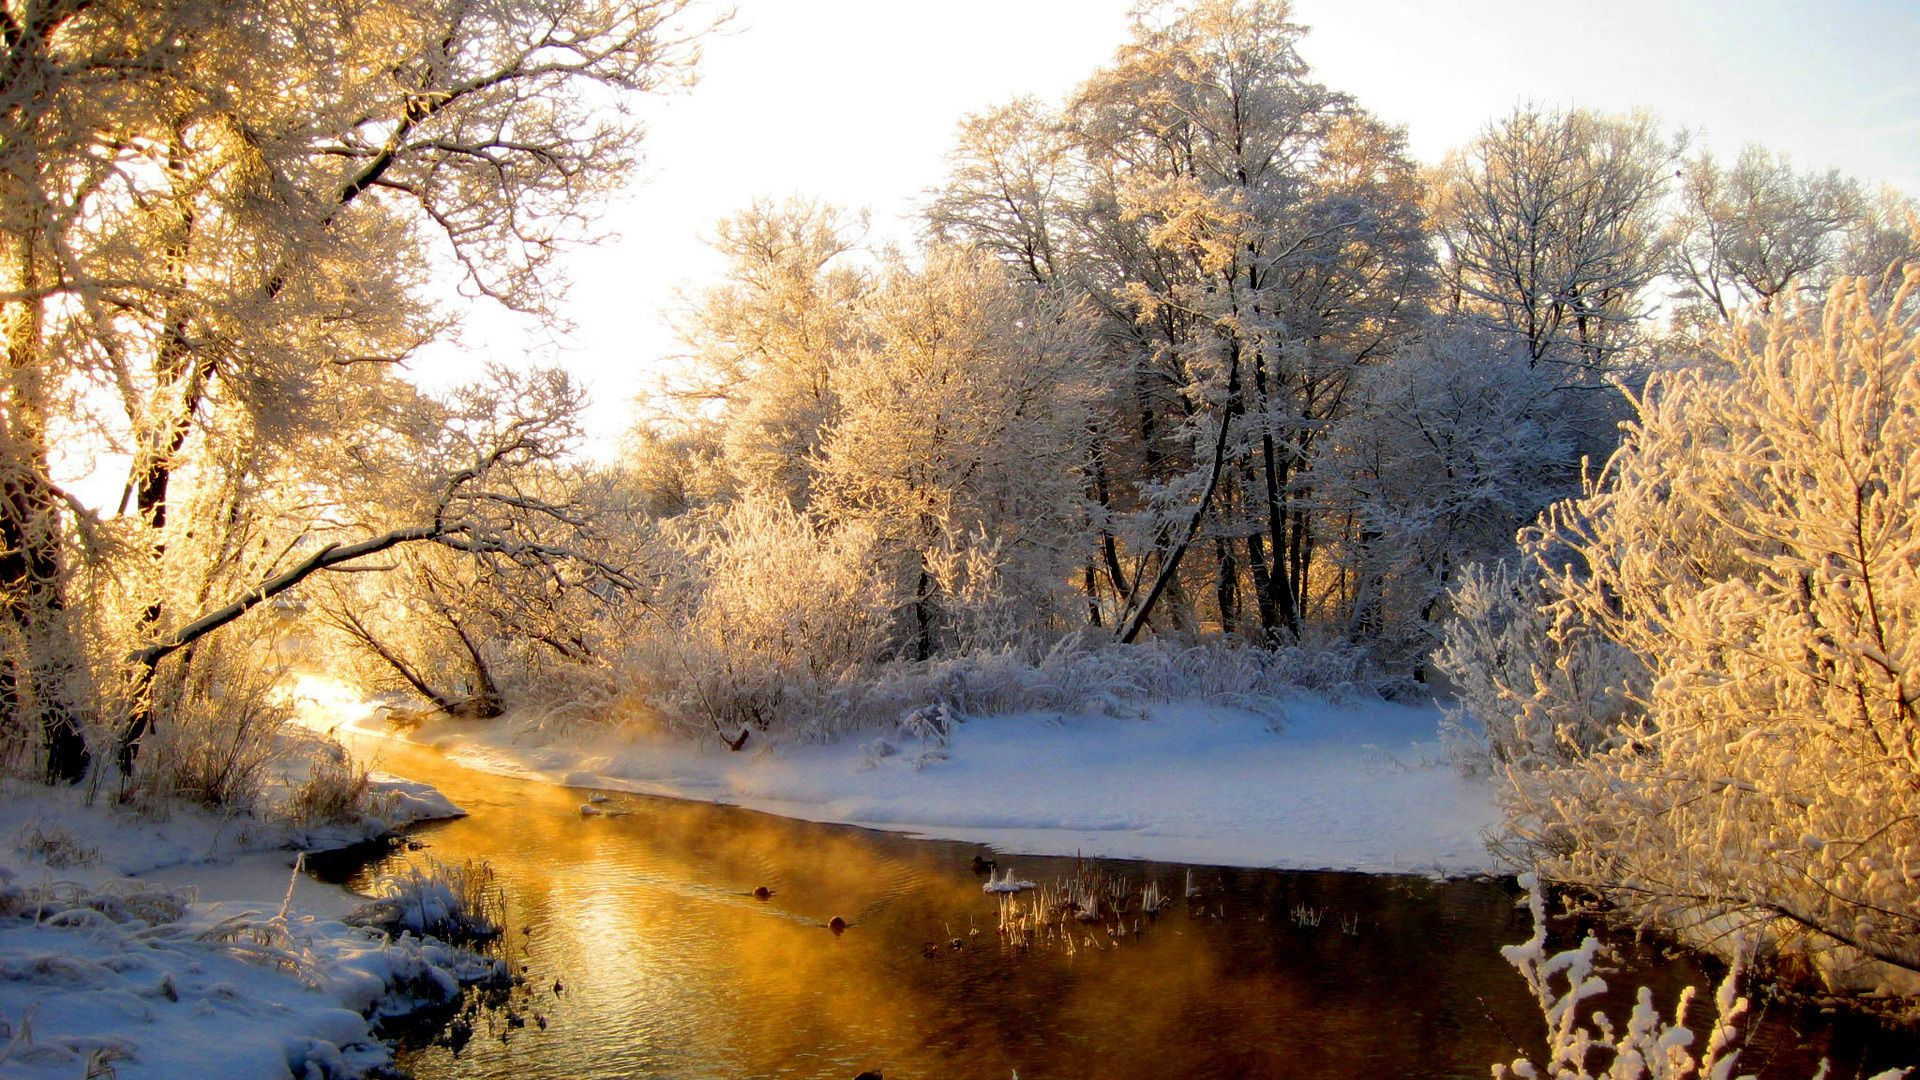 Hd Natural Beauty Computers Free Wallpapers Nature Photos Winter Scenery Winter Background